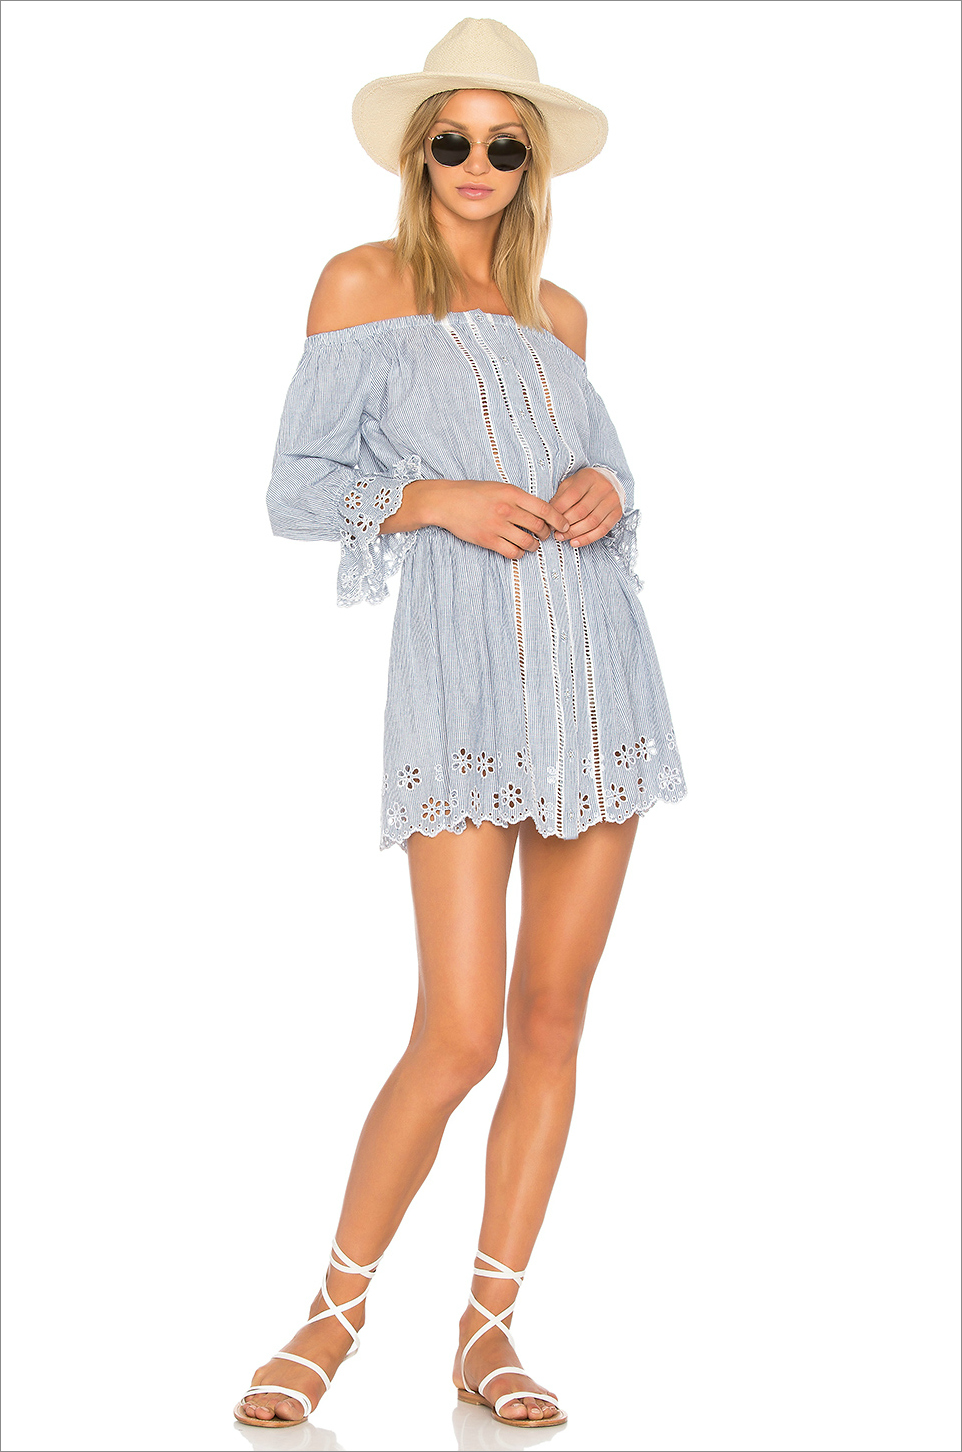 X Revolve Bonita blue day dress Tularose honeymoon outfit ideas